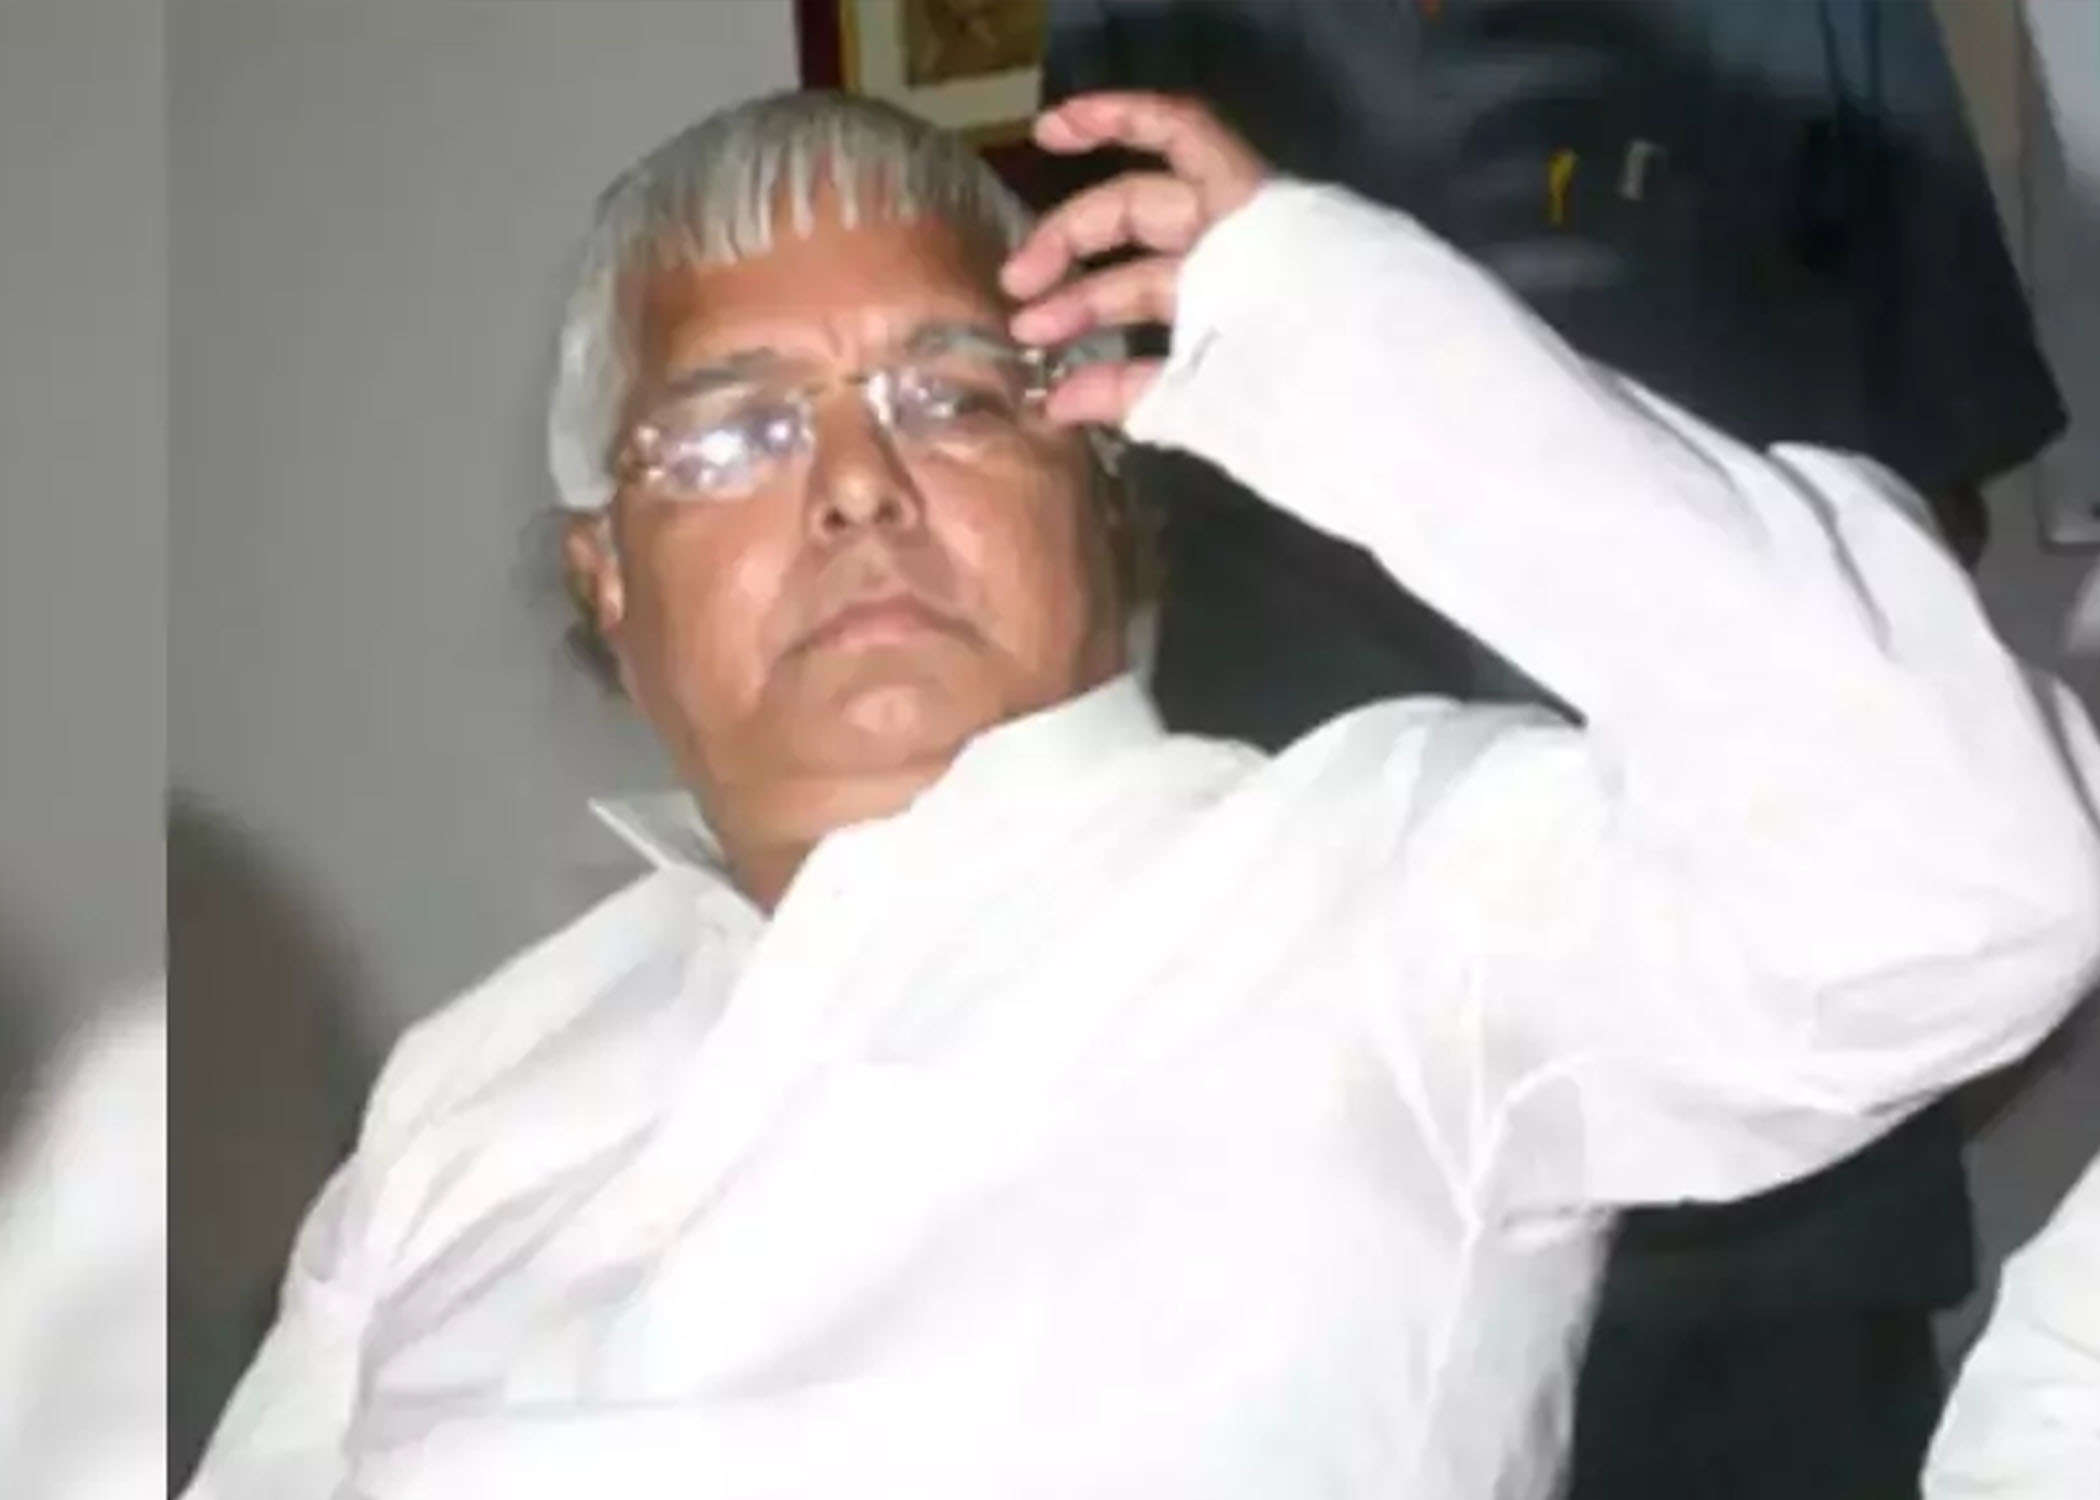 Bihar: FIR filed against Lalu Prasad over his alleged phone call to BJP MLA